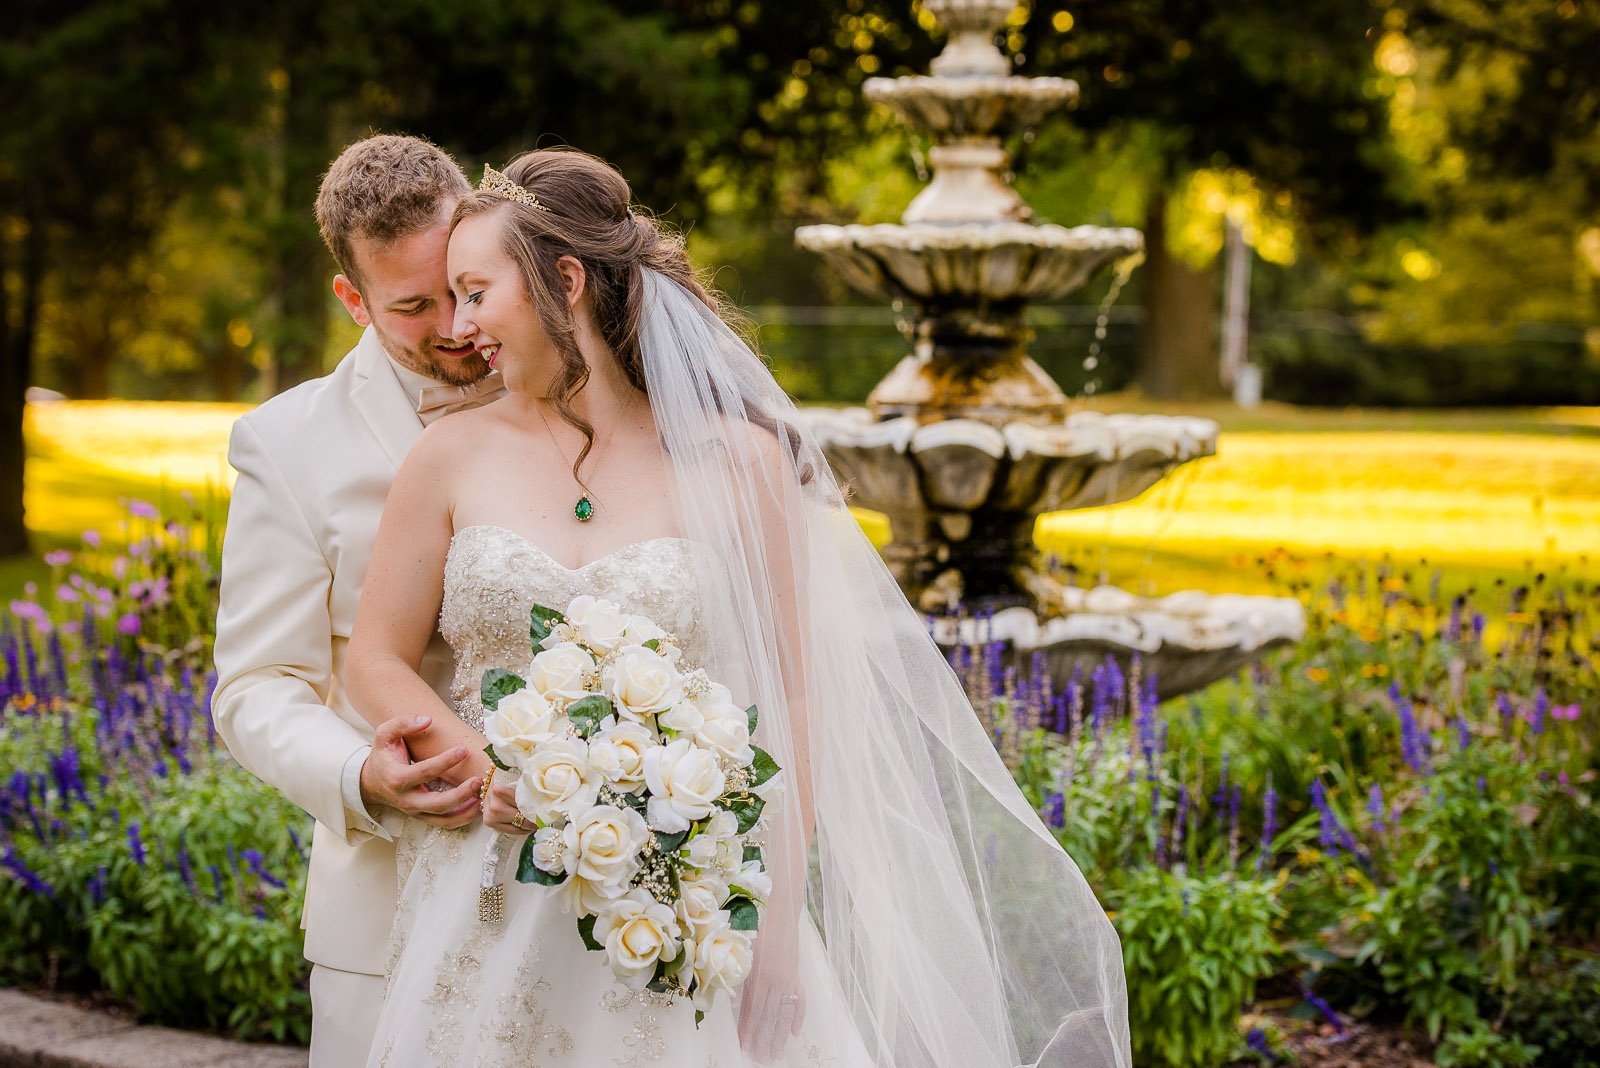 Eric_and_Christy_Photography_Blog_Wedding_Eva_Andrew-39